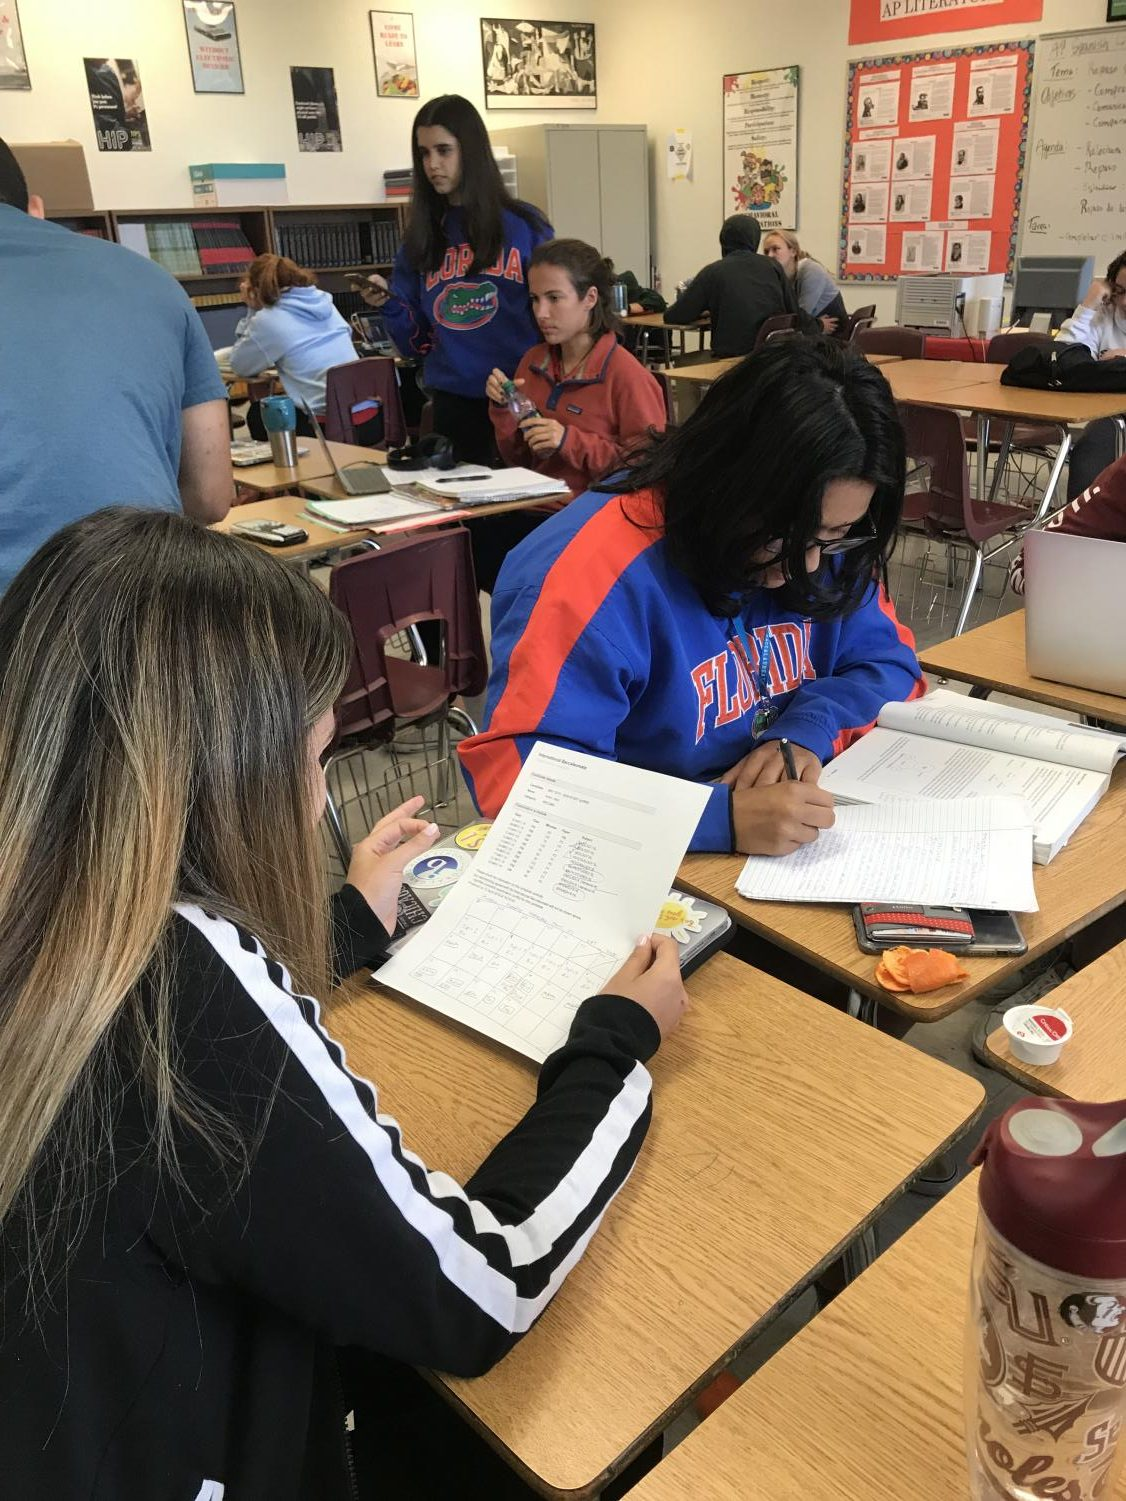 Seniors Camila Torres and Melanie Ezquezabal using their study plans to study for biology.